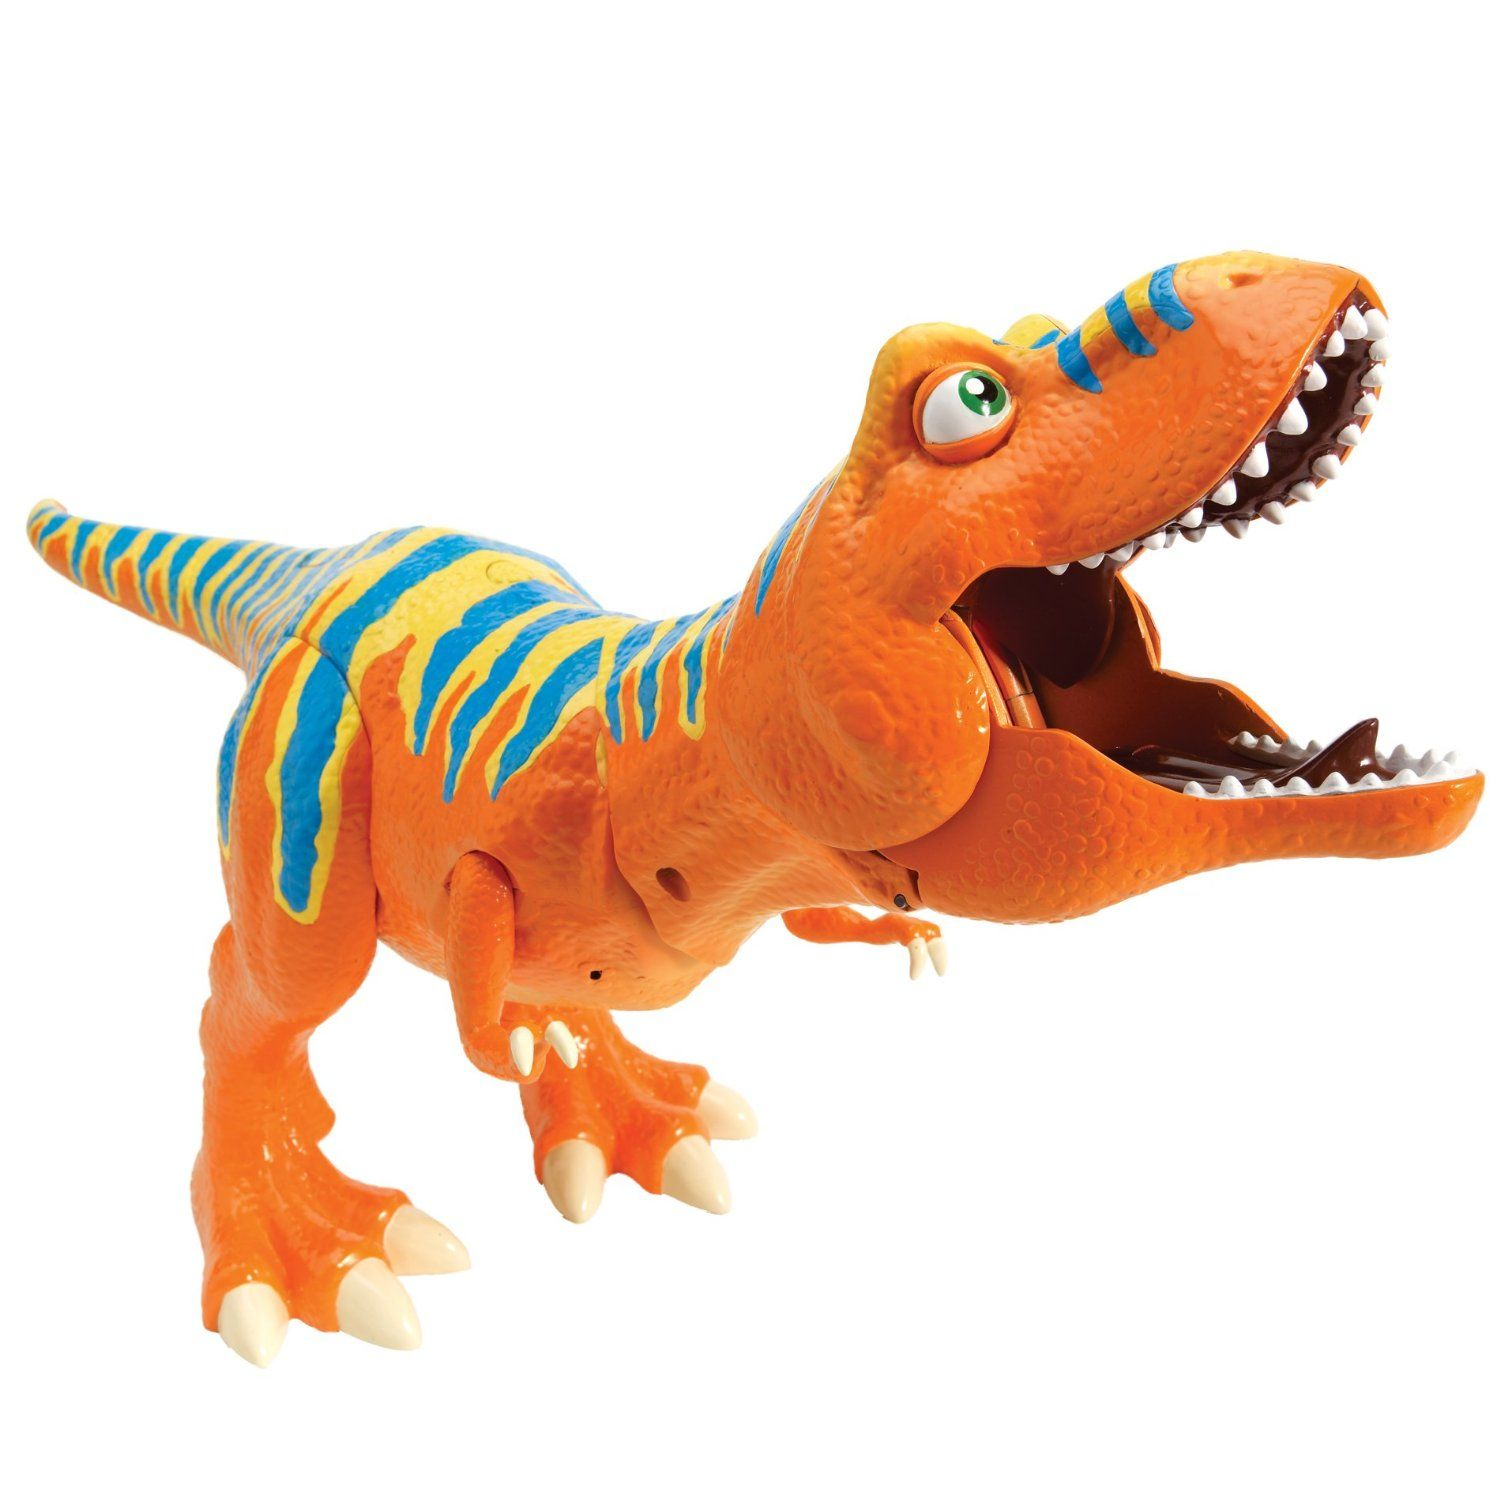 utahtaptor toy About The Dinosaur Toy Blog